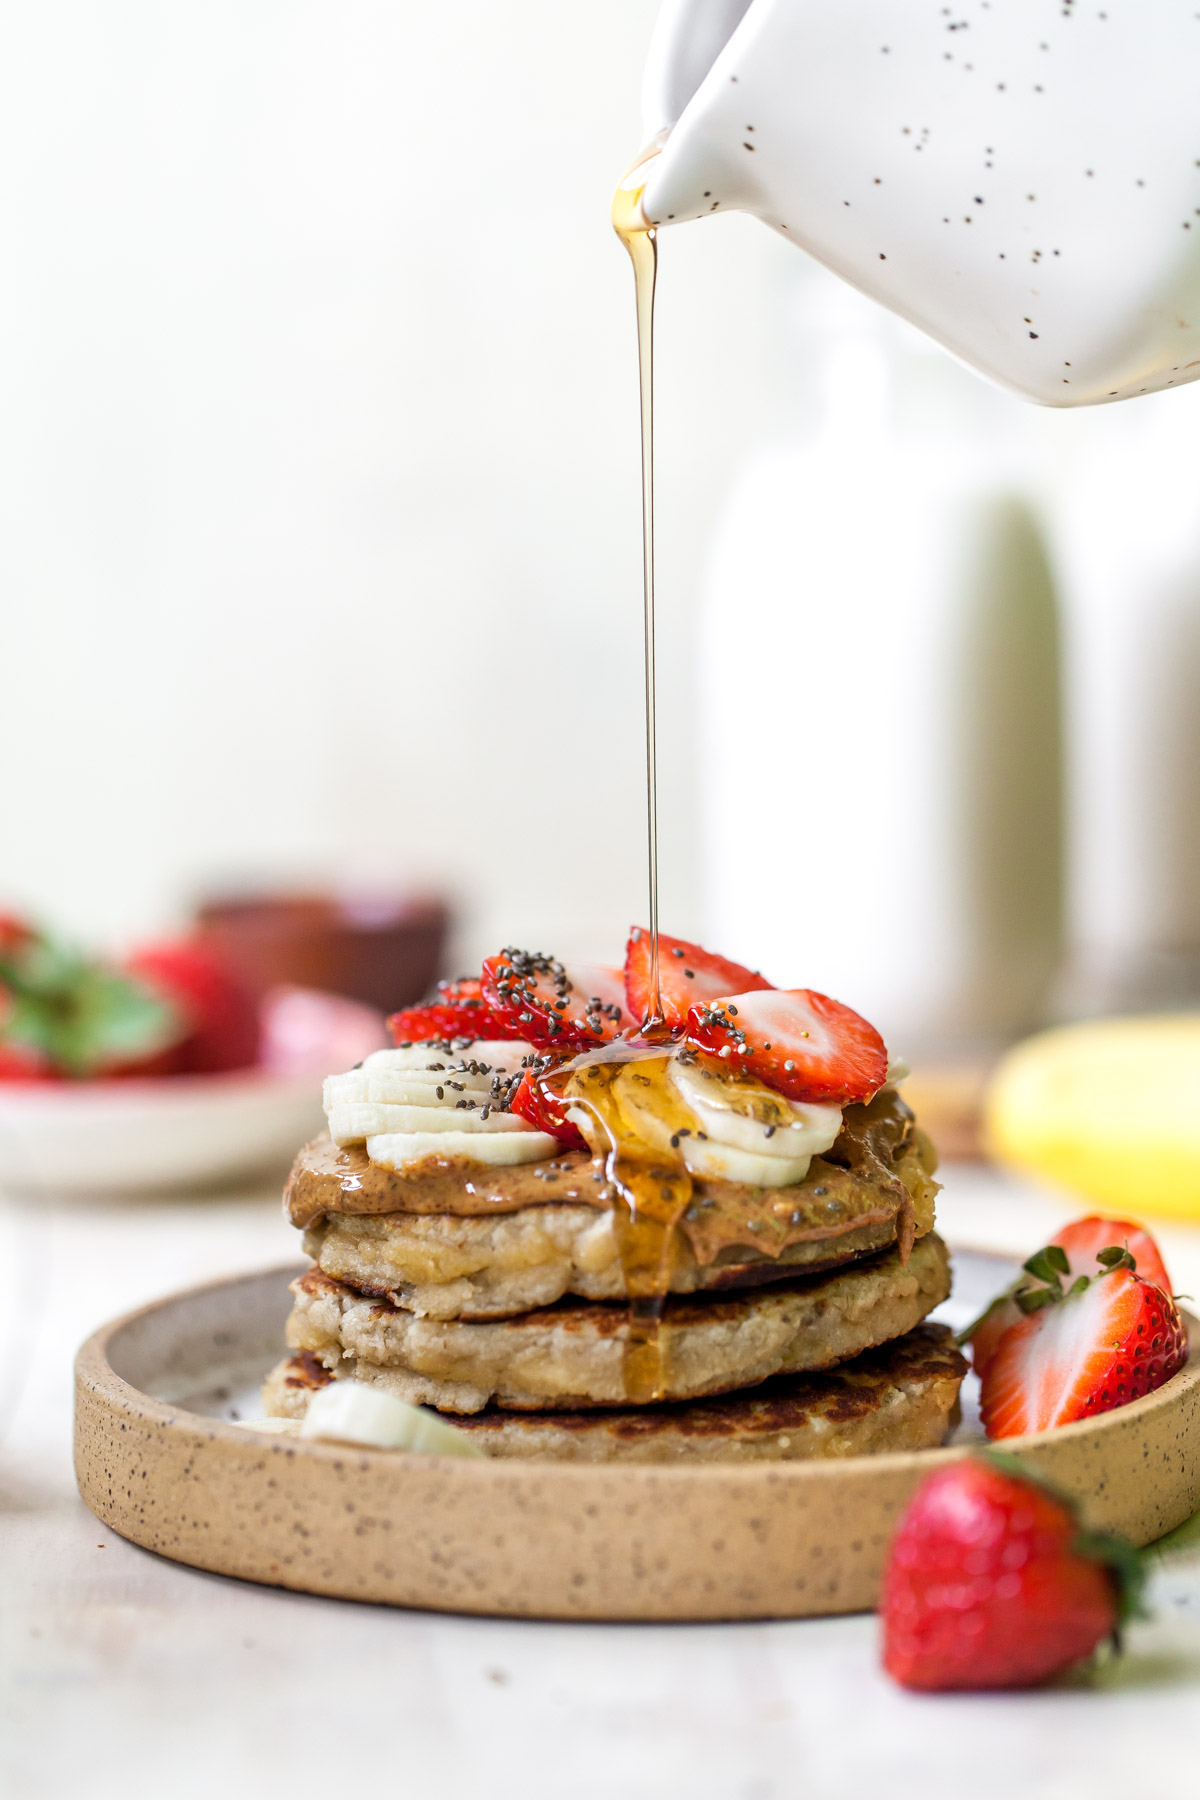 Syrup actively pouring over a stack of three pancakes on a plate